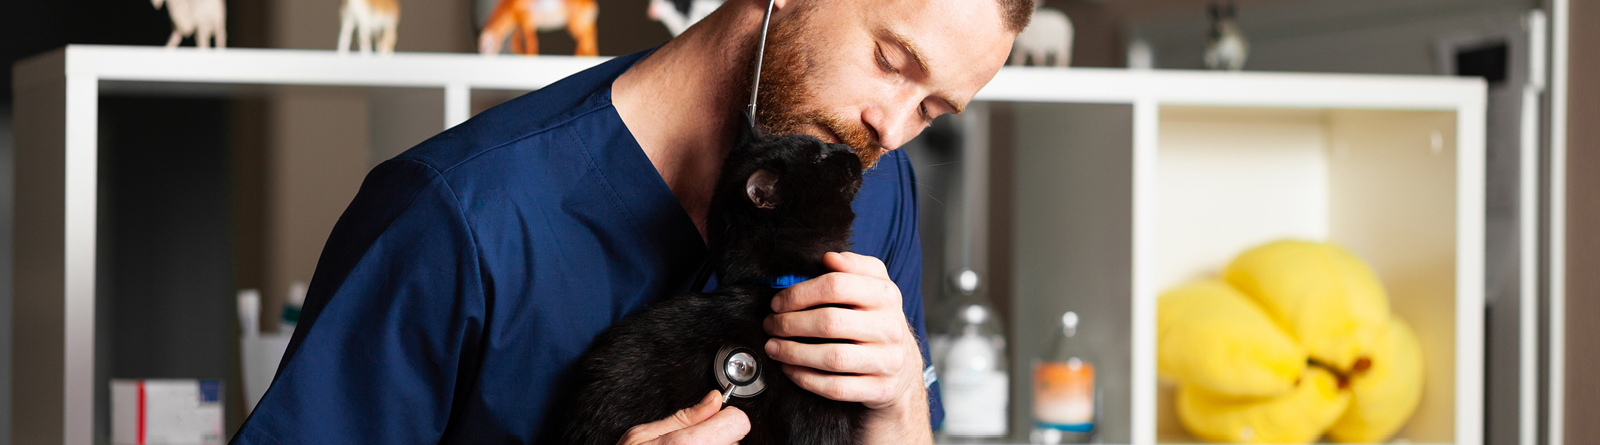 Veterinarian listening to a cat with a stethoscope